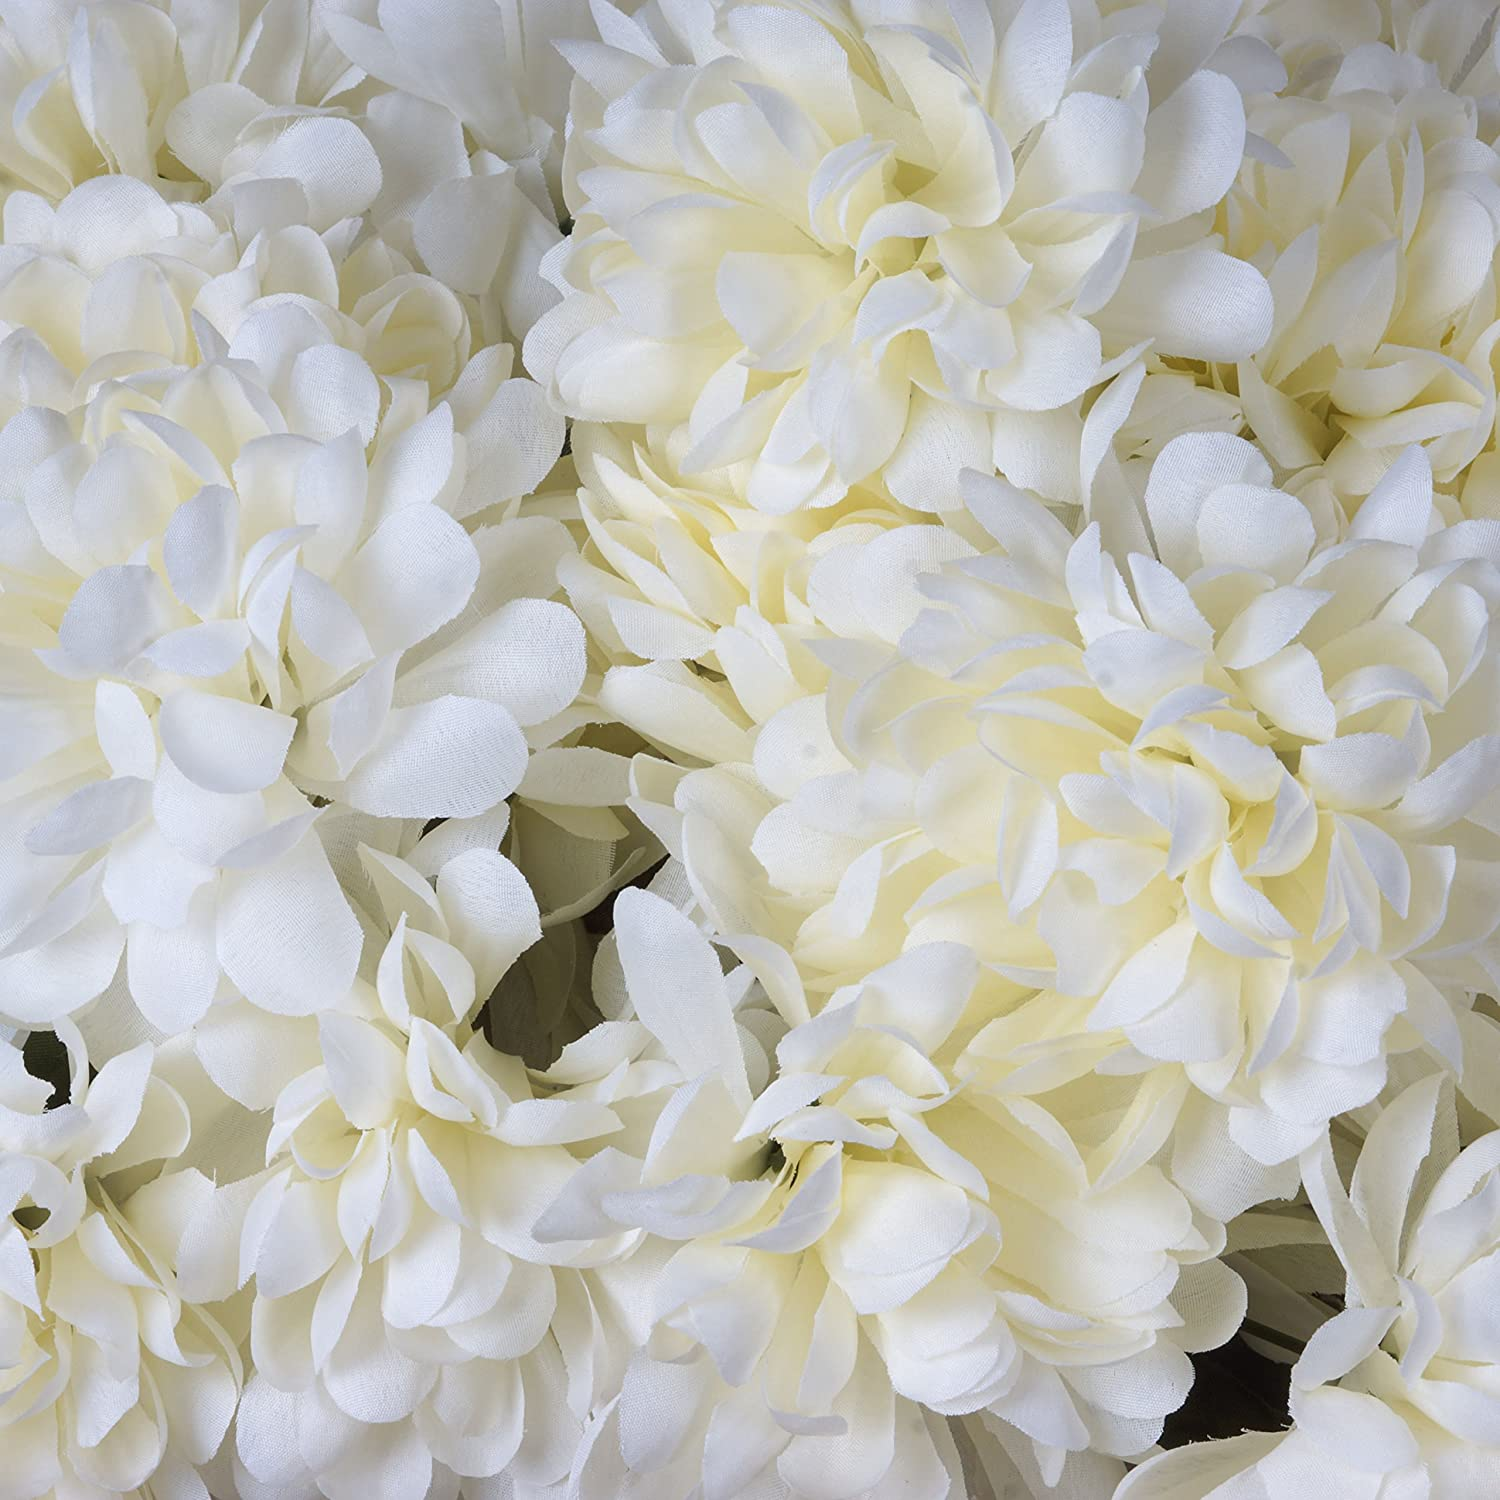 Amazon.com: BalsaCircle 56 Ivory Silk Chrysanthemums - 4 bushes ...